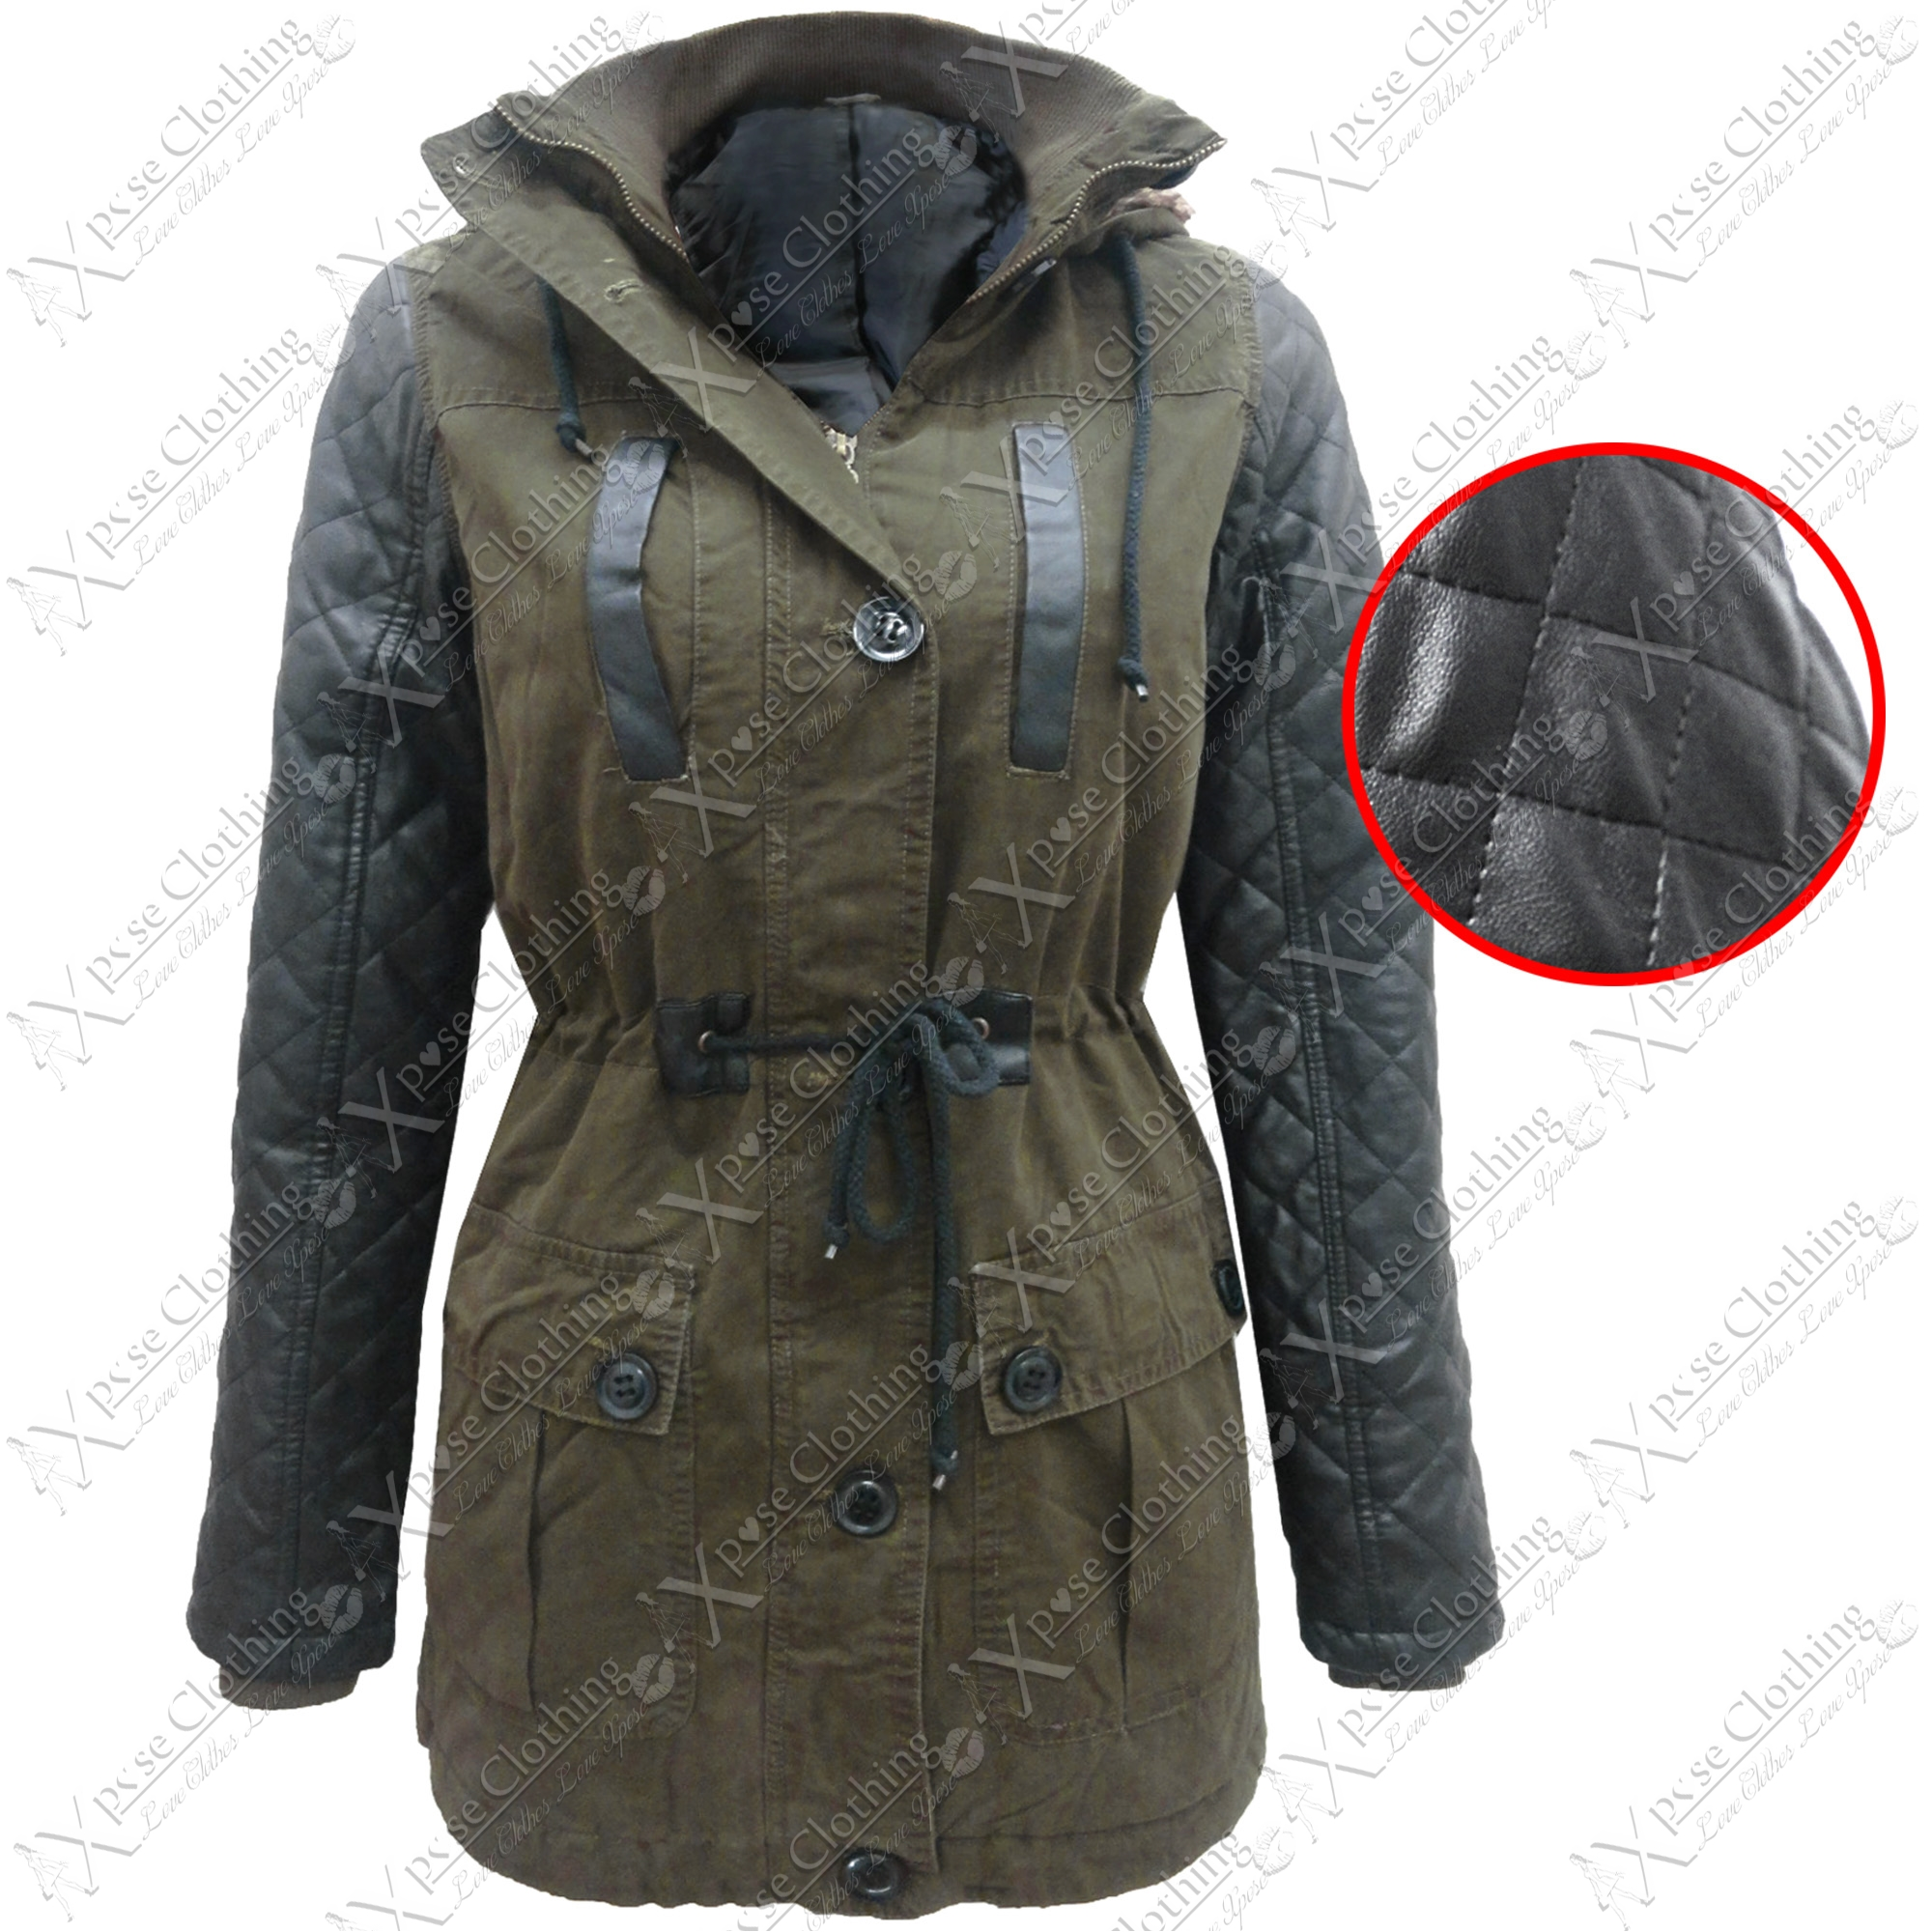 Buy ELESOL Women's Military Hooded Warm Winter Parkas Faux Fur Lined Jacket Coats and other Fur & Faux Fur at shopnow-vjpmehag.cf Our wide selection is elegible for free shipping and free returns/5(30).